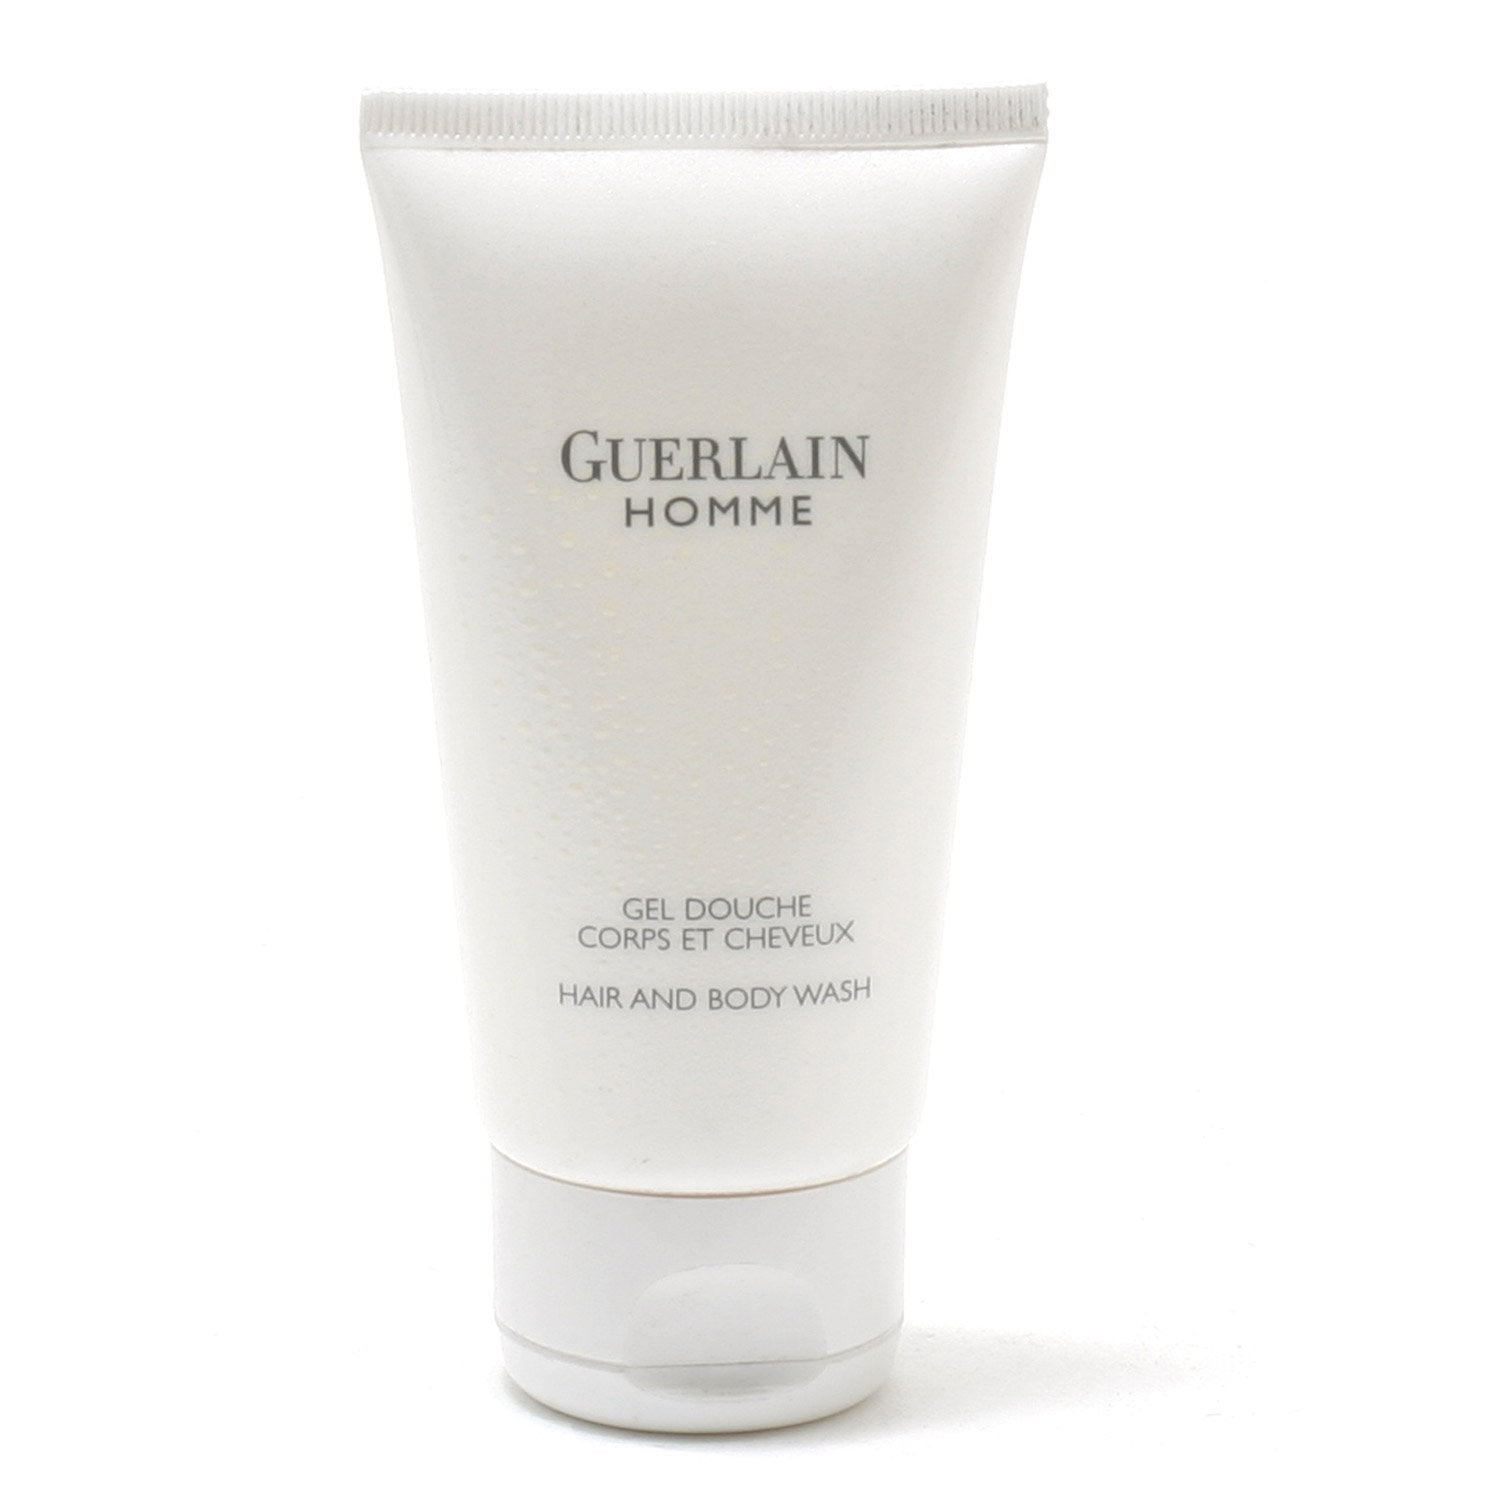 Bath And Body - GUERLAIN HOMME - HAIR AND BODY WASH, 2.5 OZ